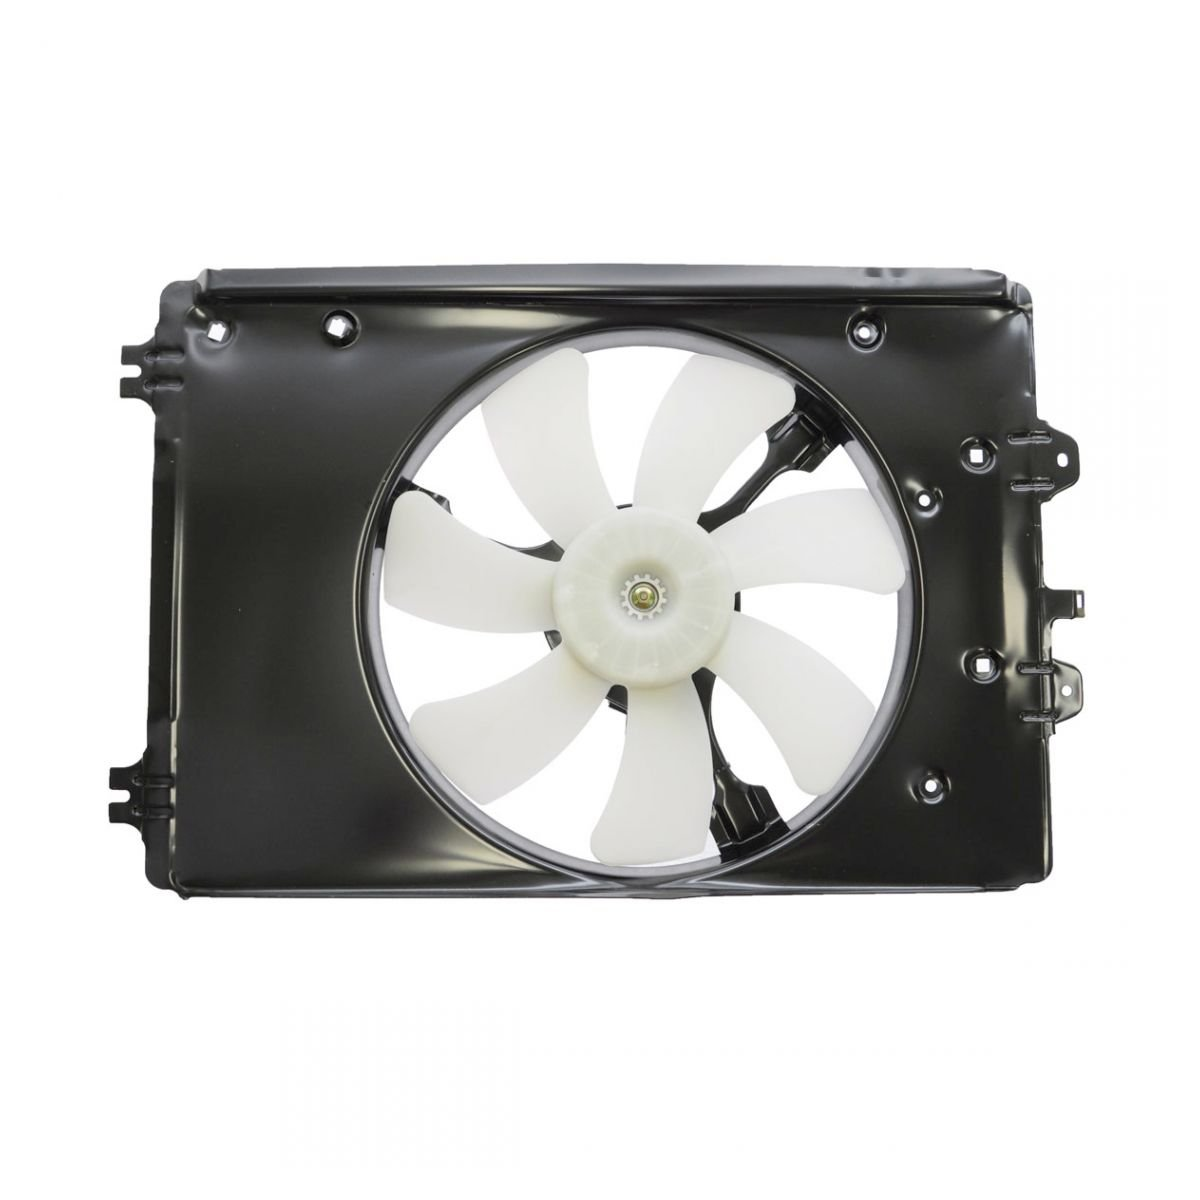 A/C AC Condenser Cooling Fan Assembly for 09-13 Honda Pilot 2WD